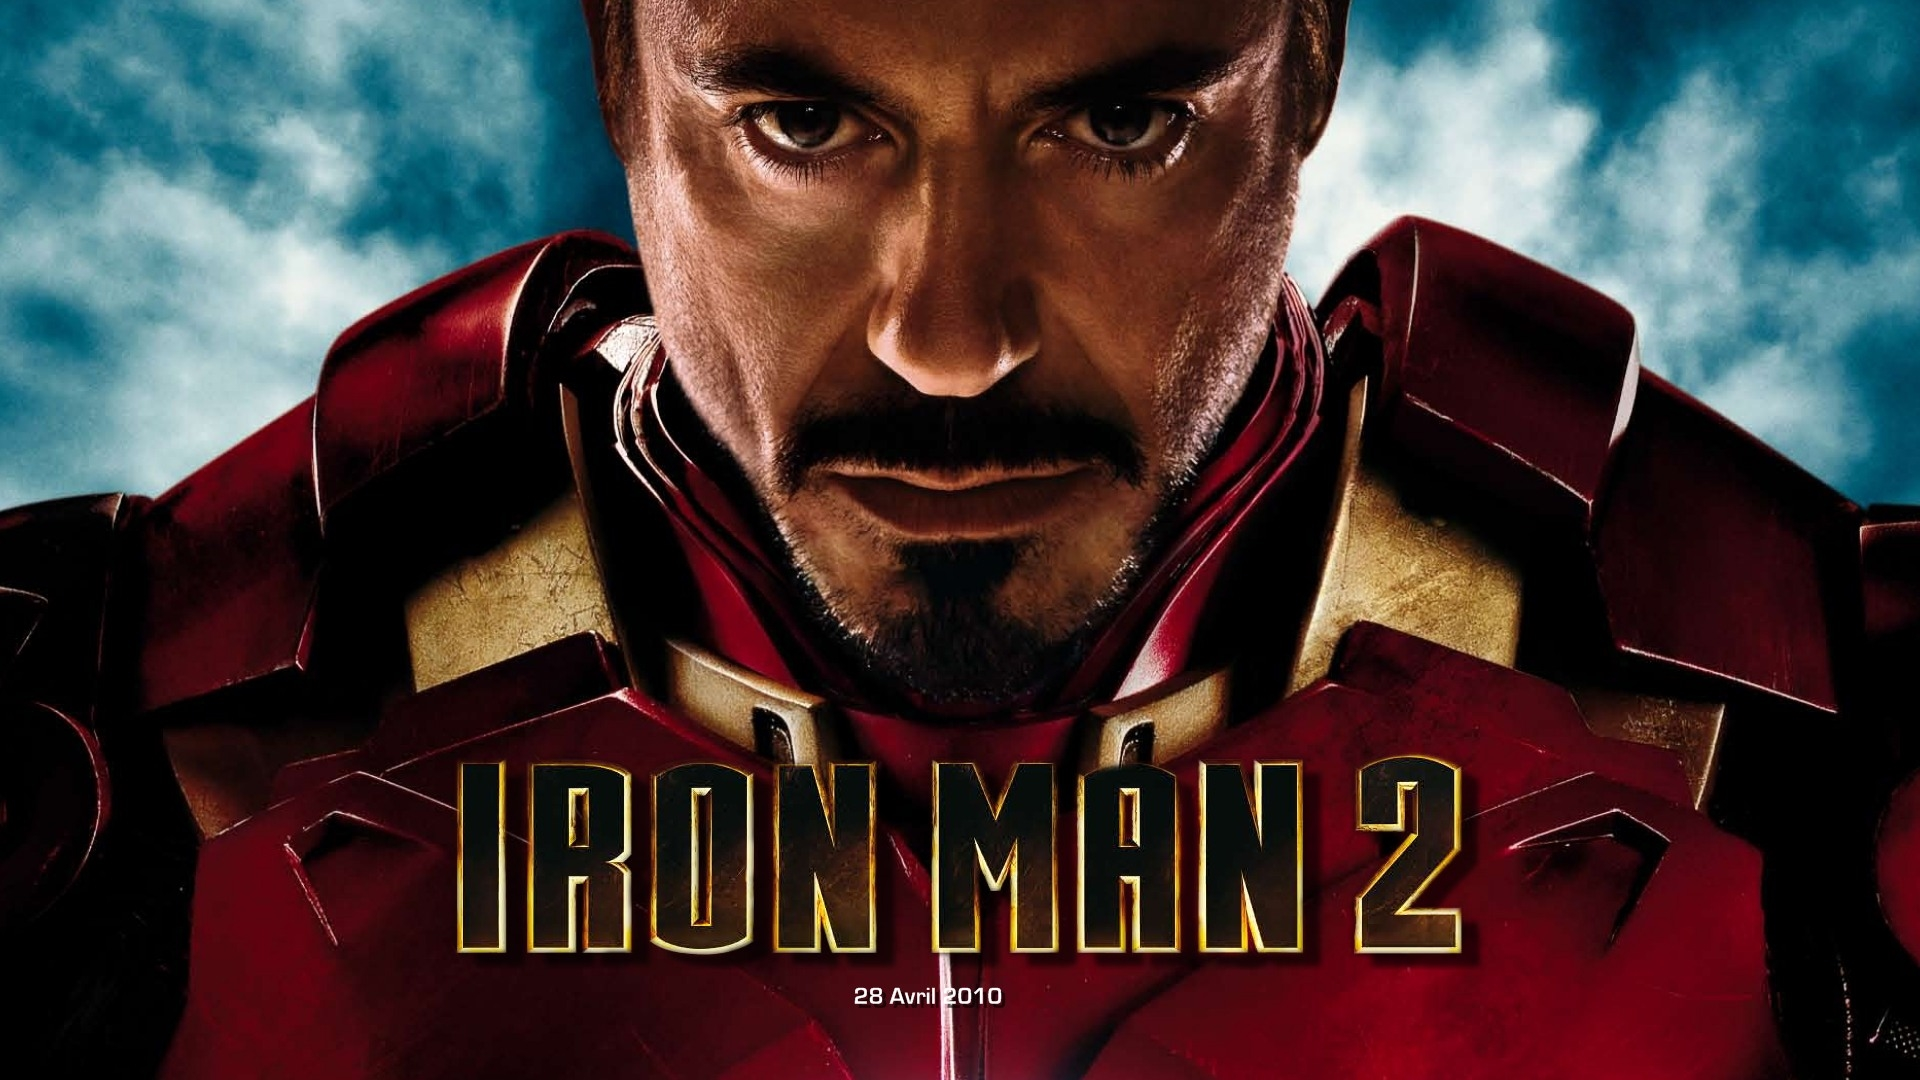 iron man 2 wallpapers